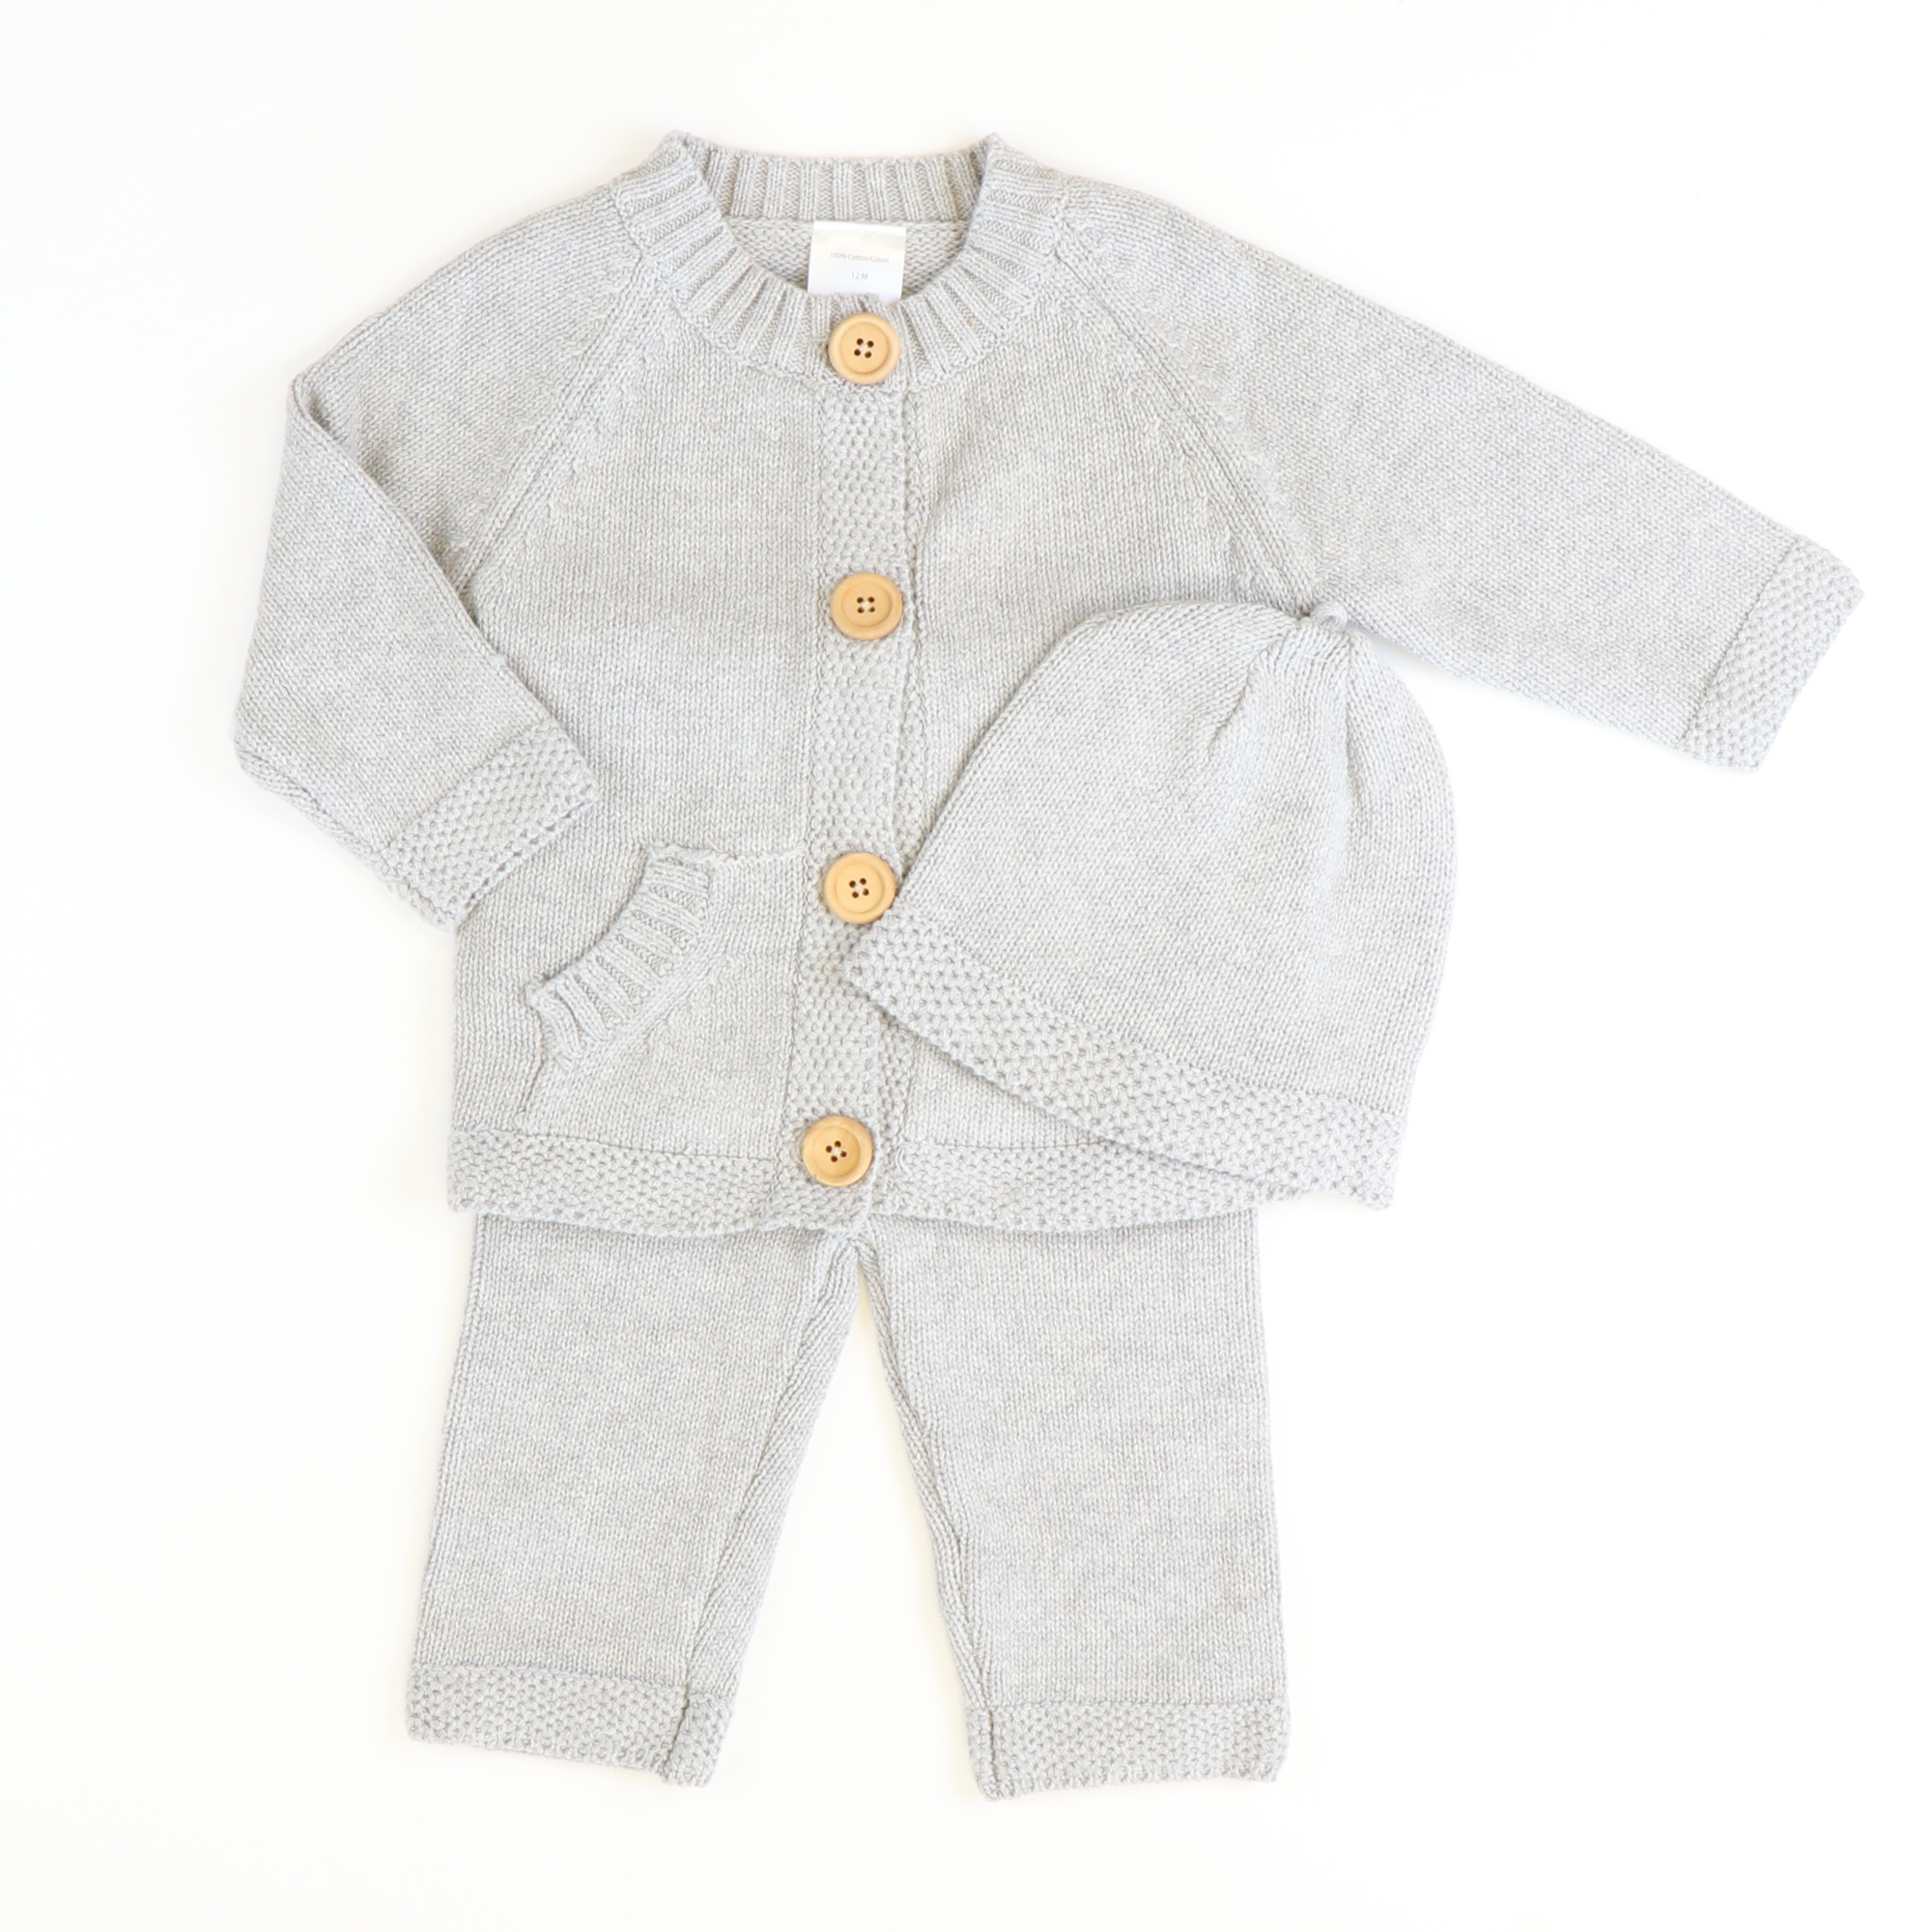 Gray Cardigan, Hat, & Pants Set - Stellybelly ?id=15953662705743